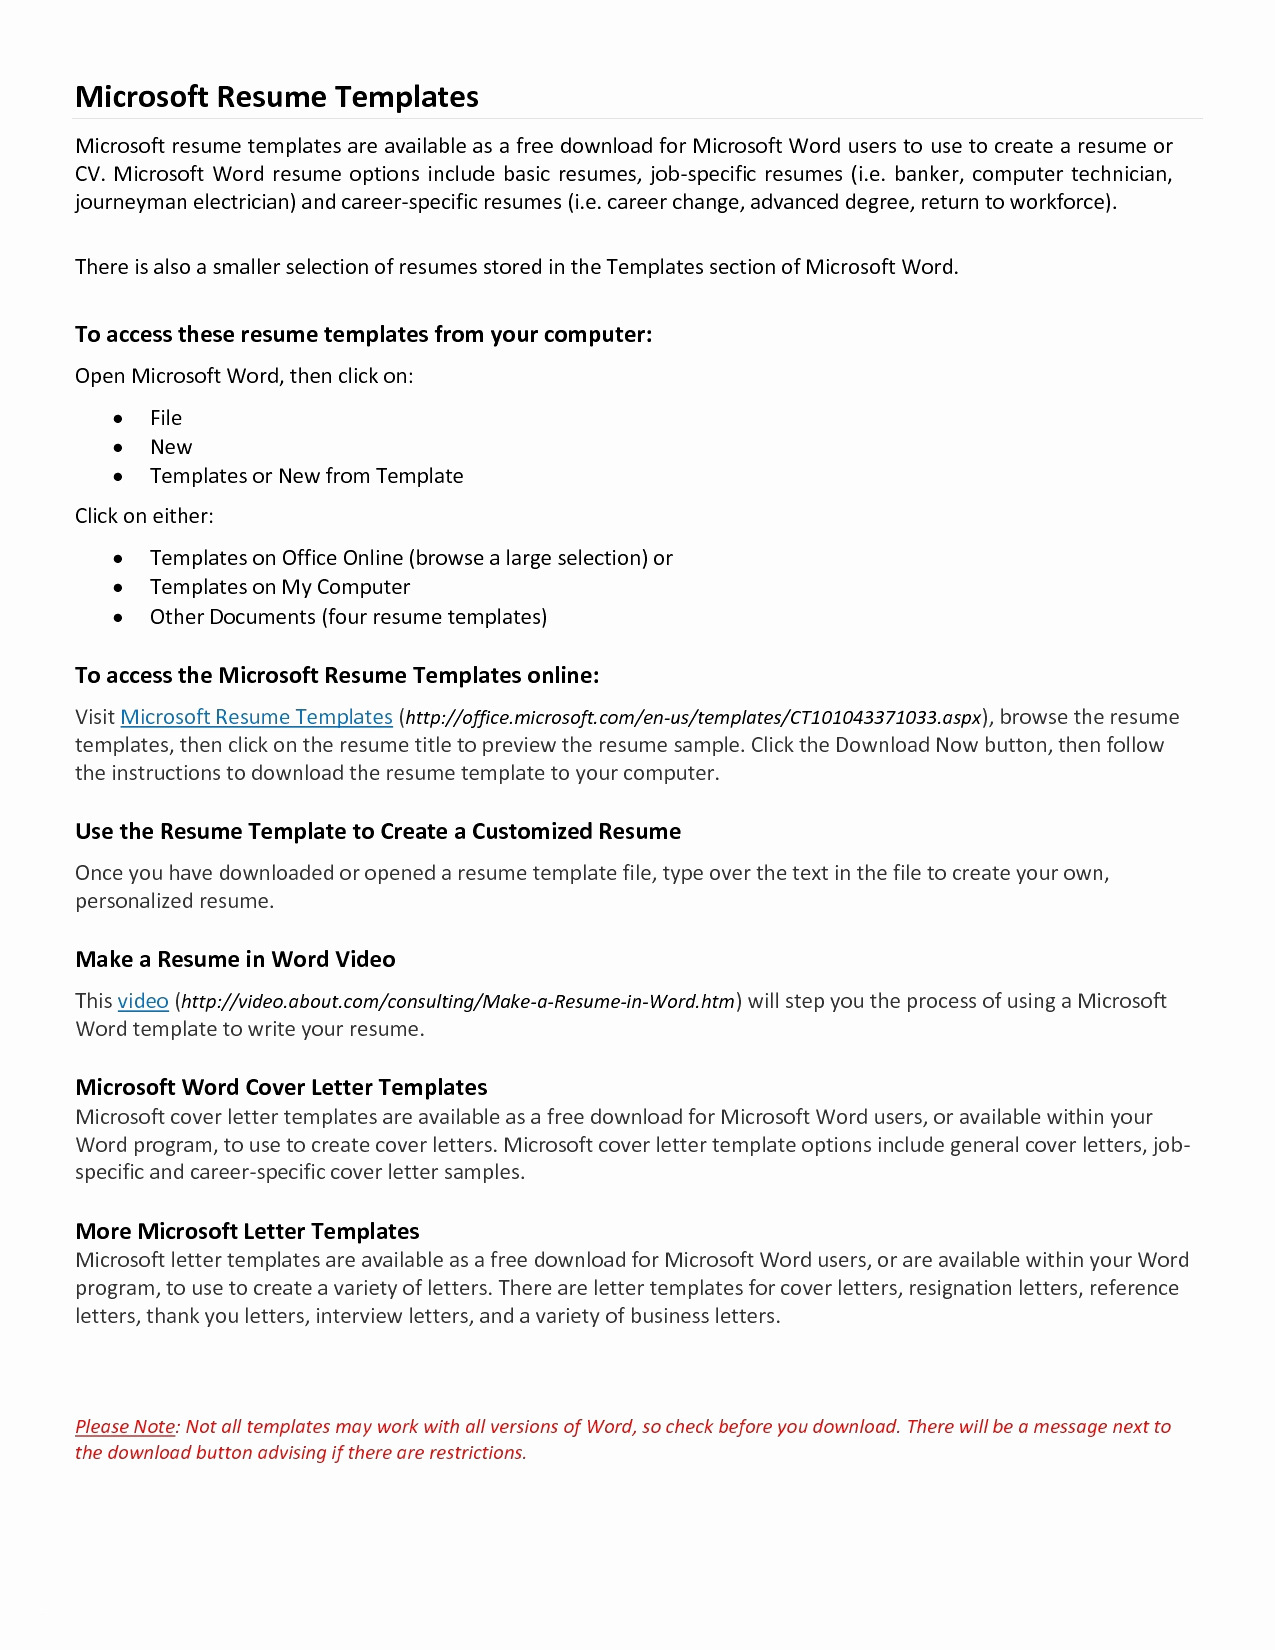 general cover letter template free example-general cover letter template free free microsoft resume templates new microsoft word resume sample lovely resume template free word new od 13o 4-k